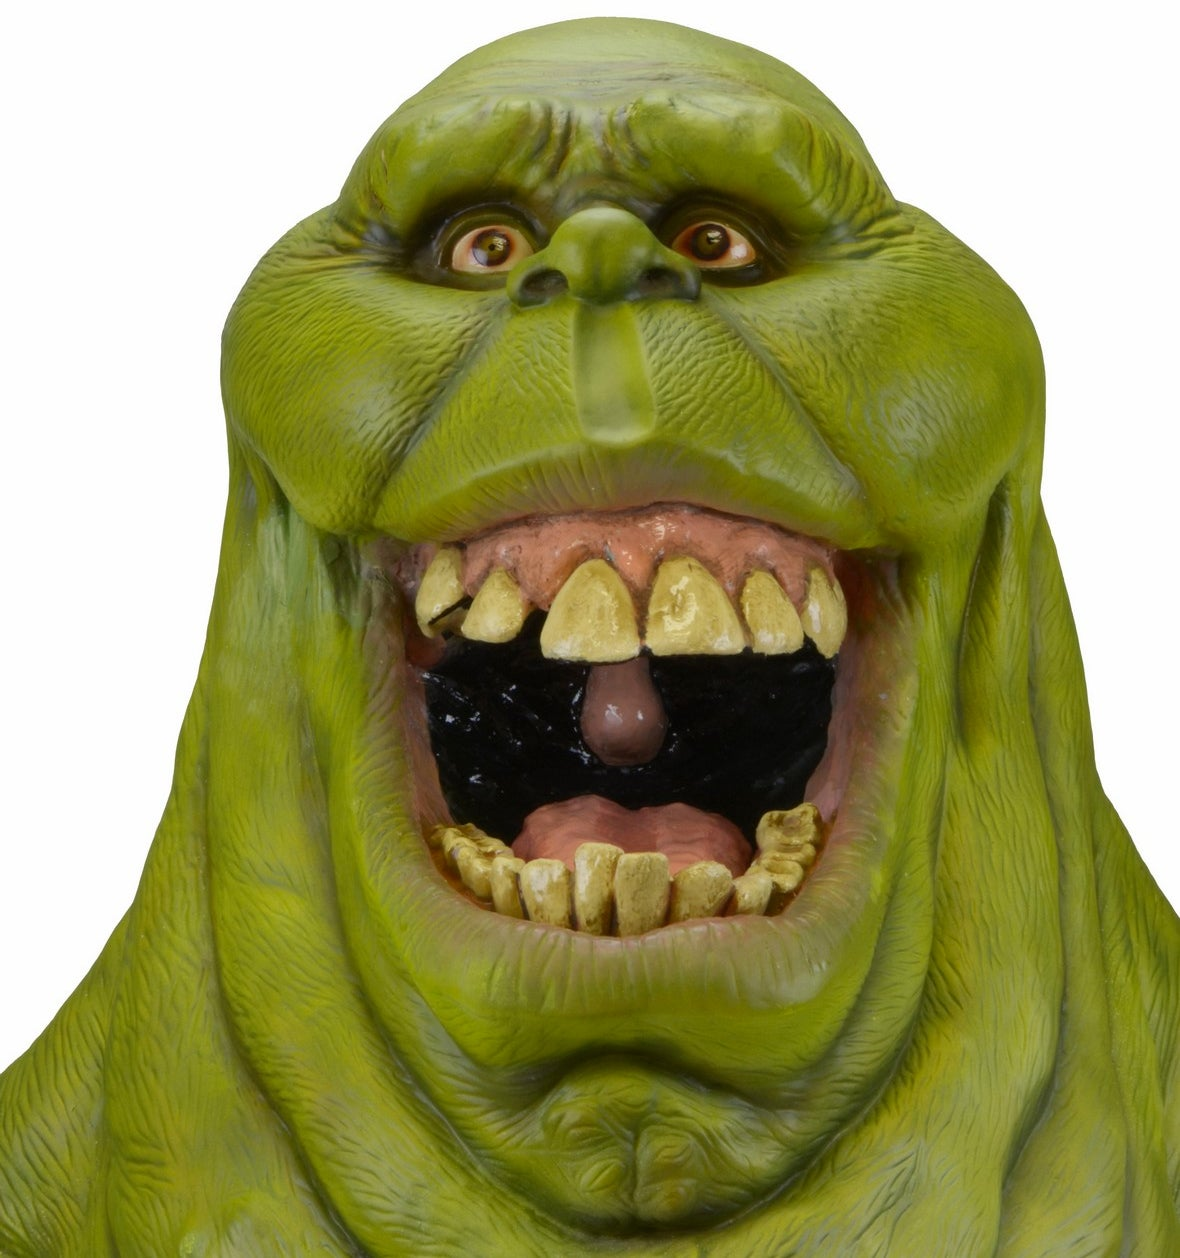 Shoot Your Own Ghostbusters Remake With This Life-Size Slimer Replica